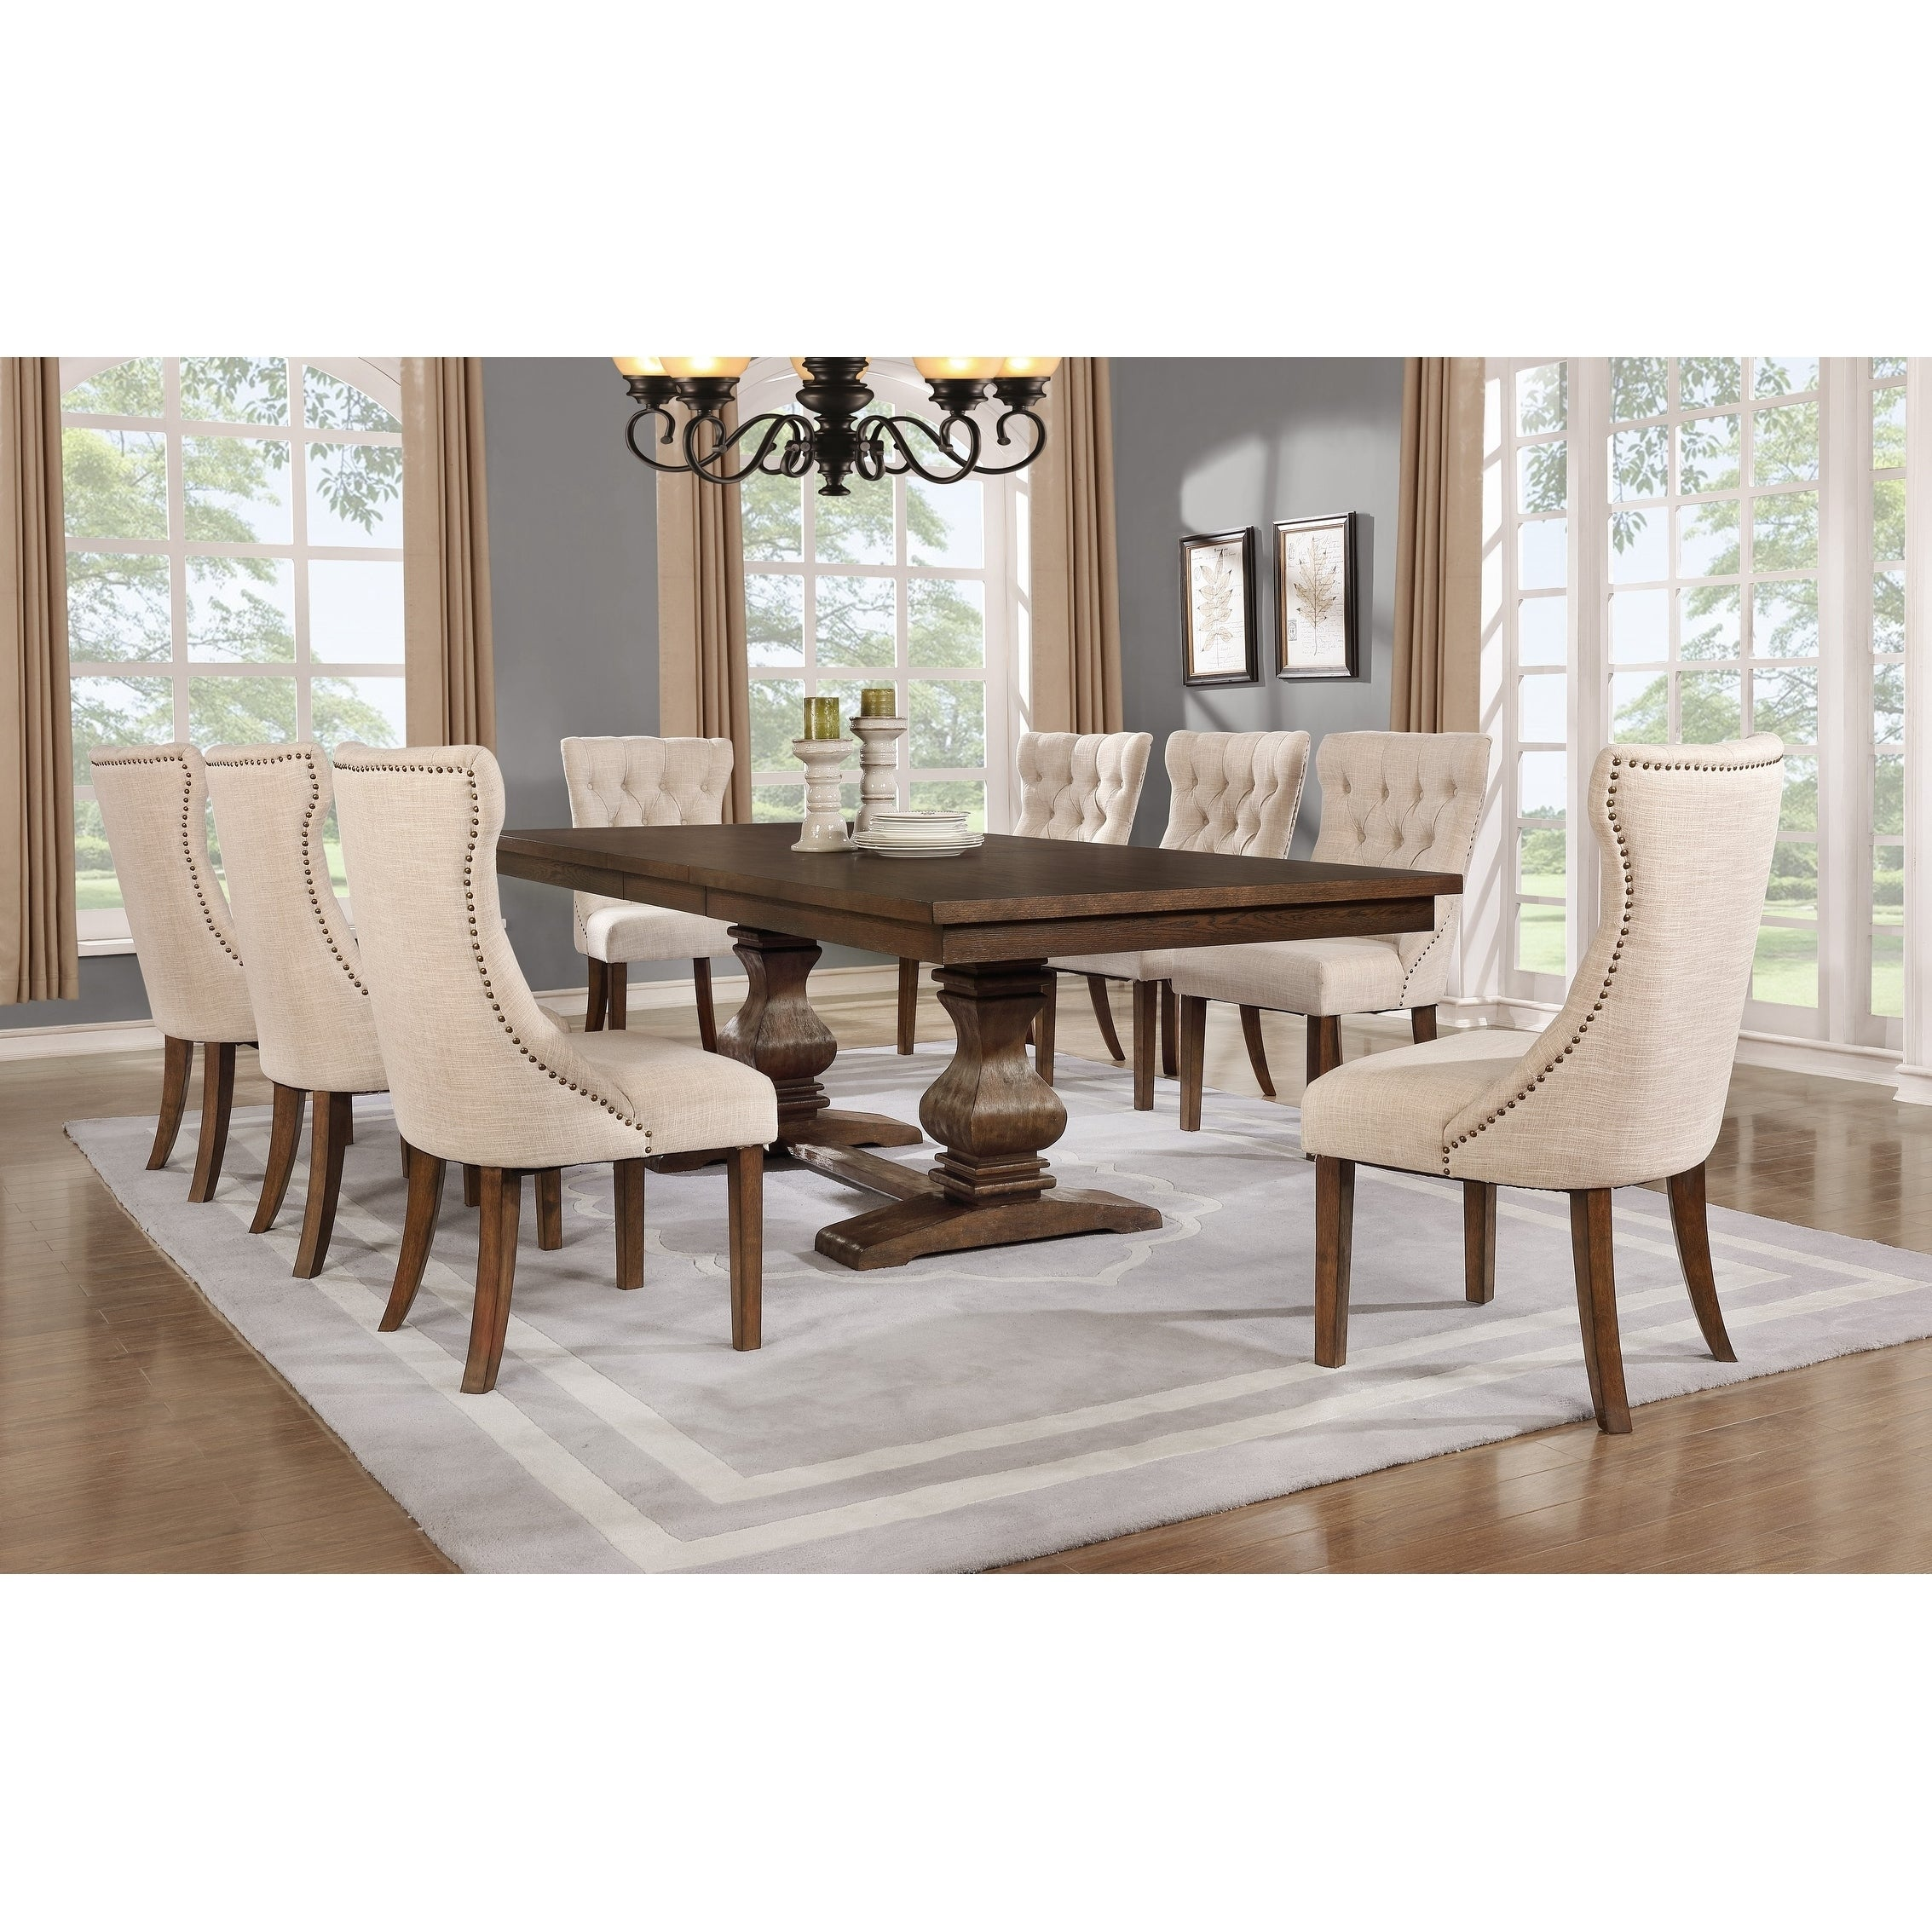 Best Quality Furniture 9 Piece Walnut Extension Dining Table Set